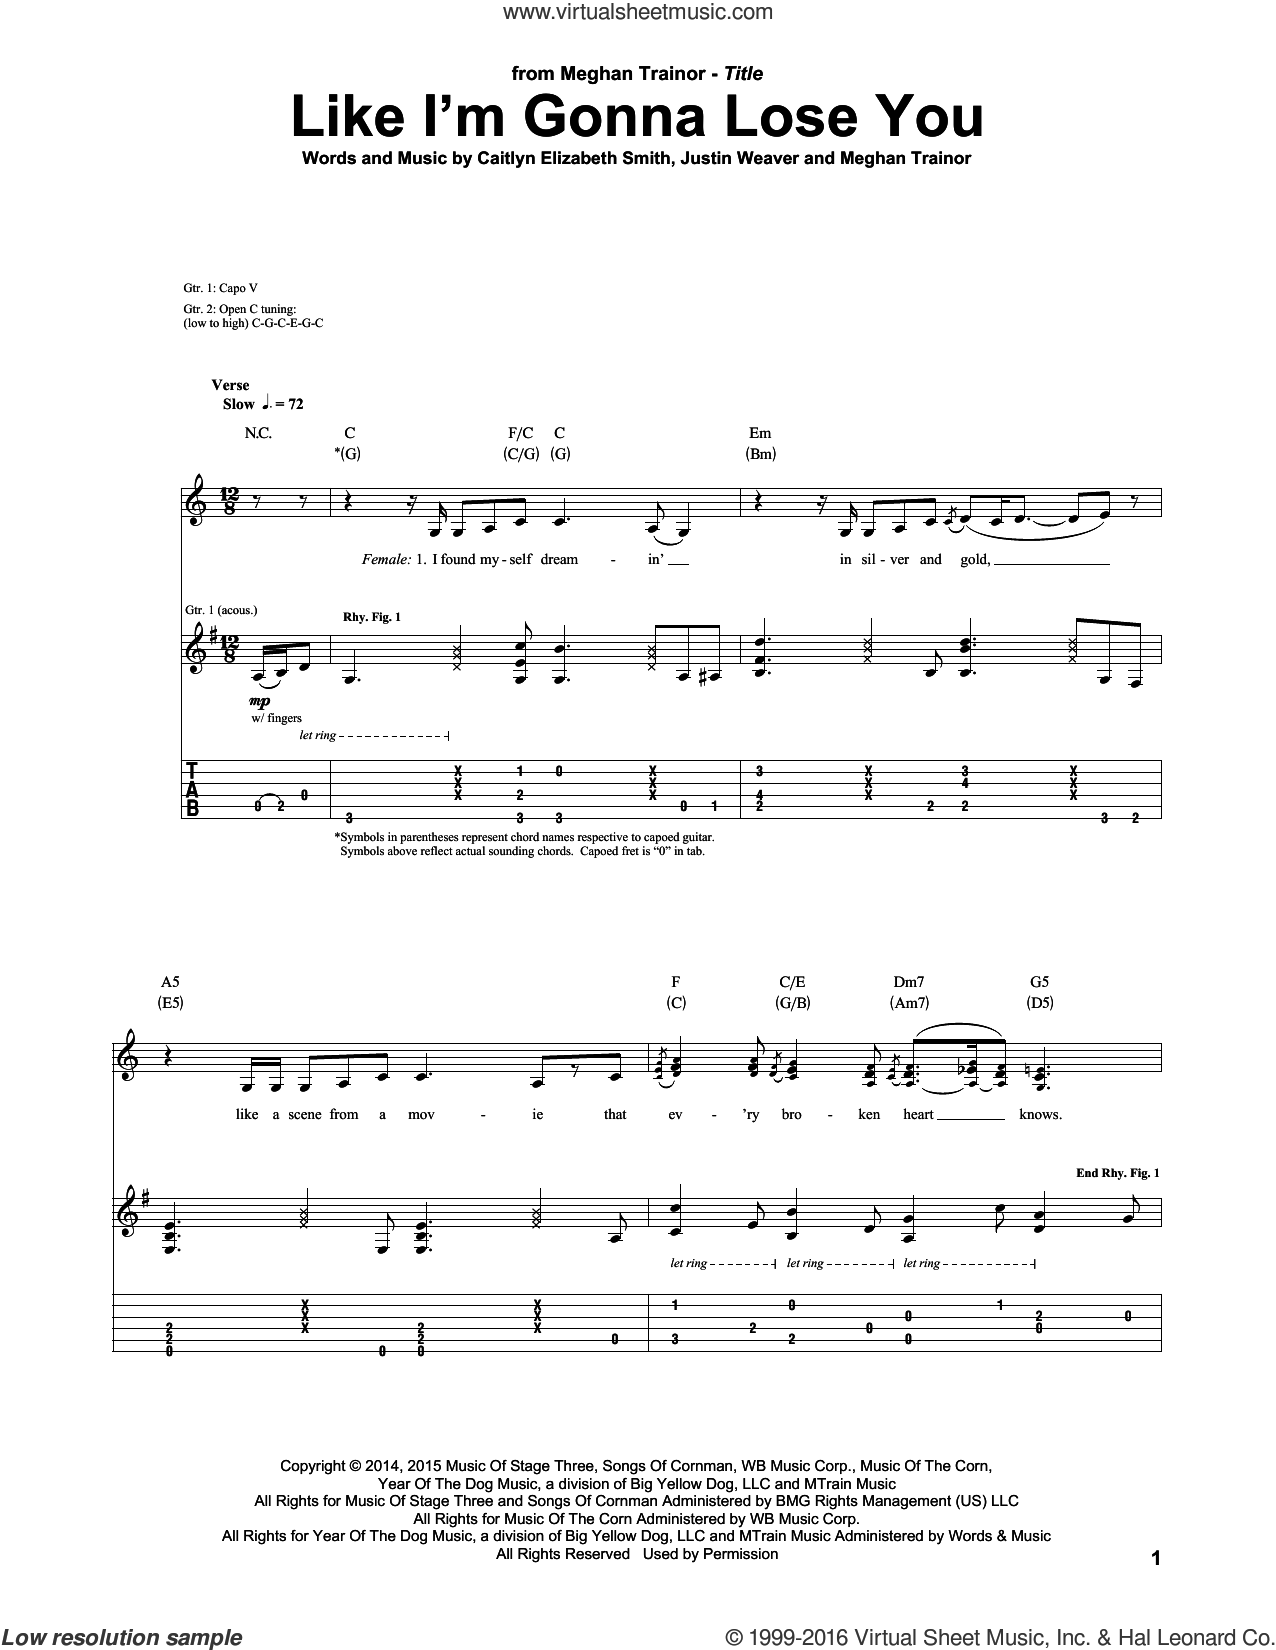 Like I'm Gonna Lose You sheet music for guitar (tablature) by Meghan Trainor, Caitlyn Elizabeth Smith and Justin Weaver, intermediate skill level